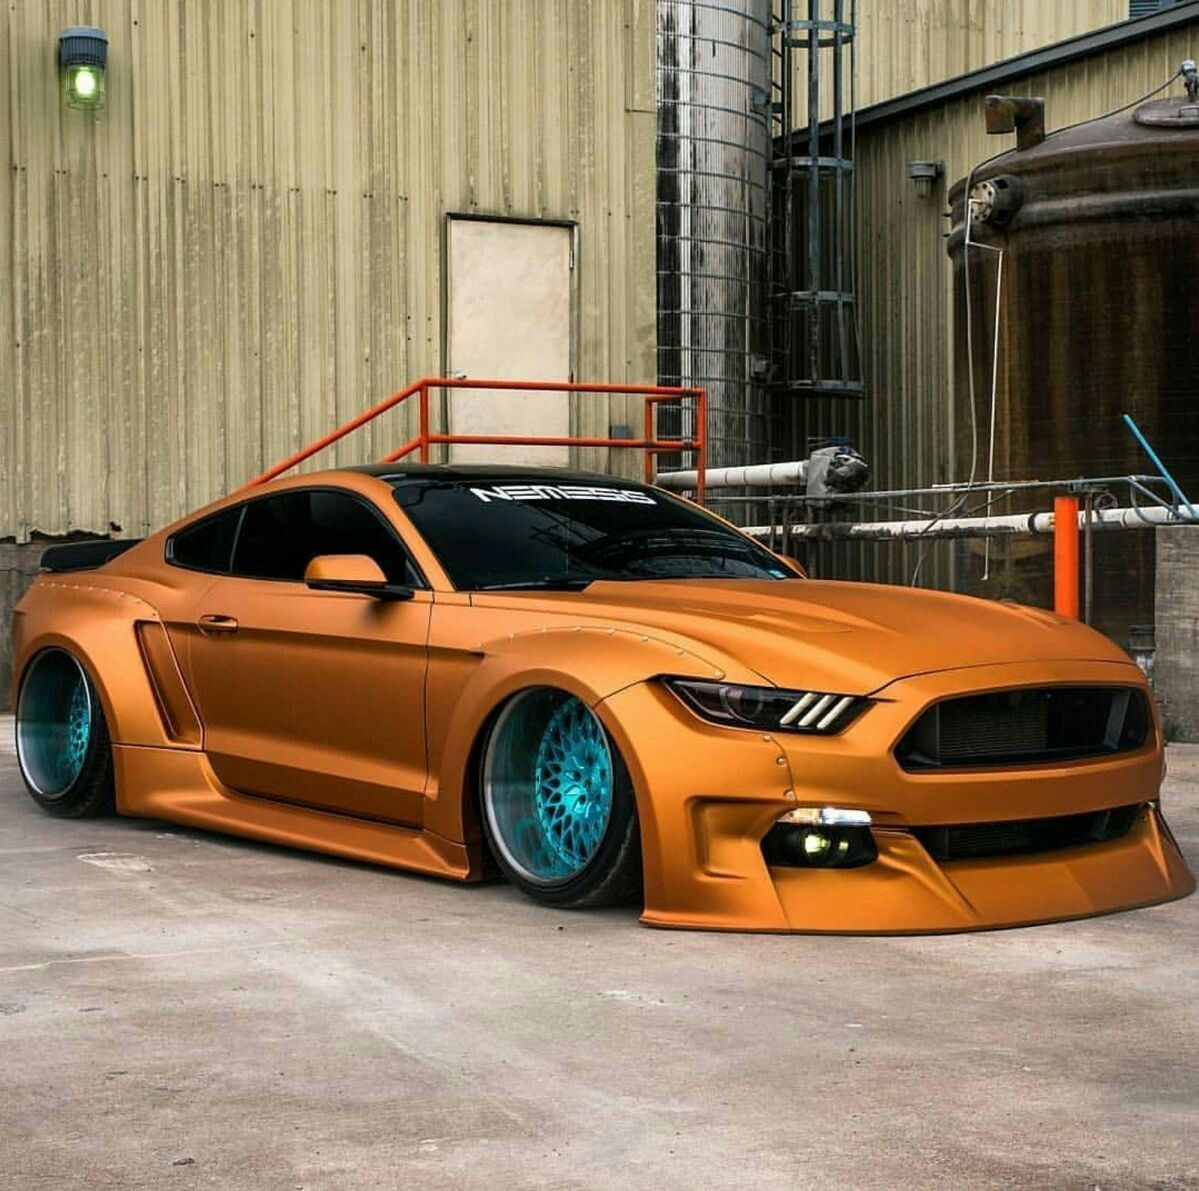 Pin By Cliff Donovan On Mustang Ford Mustang Car Ford Mustang